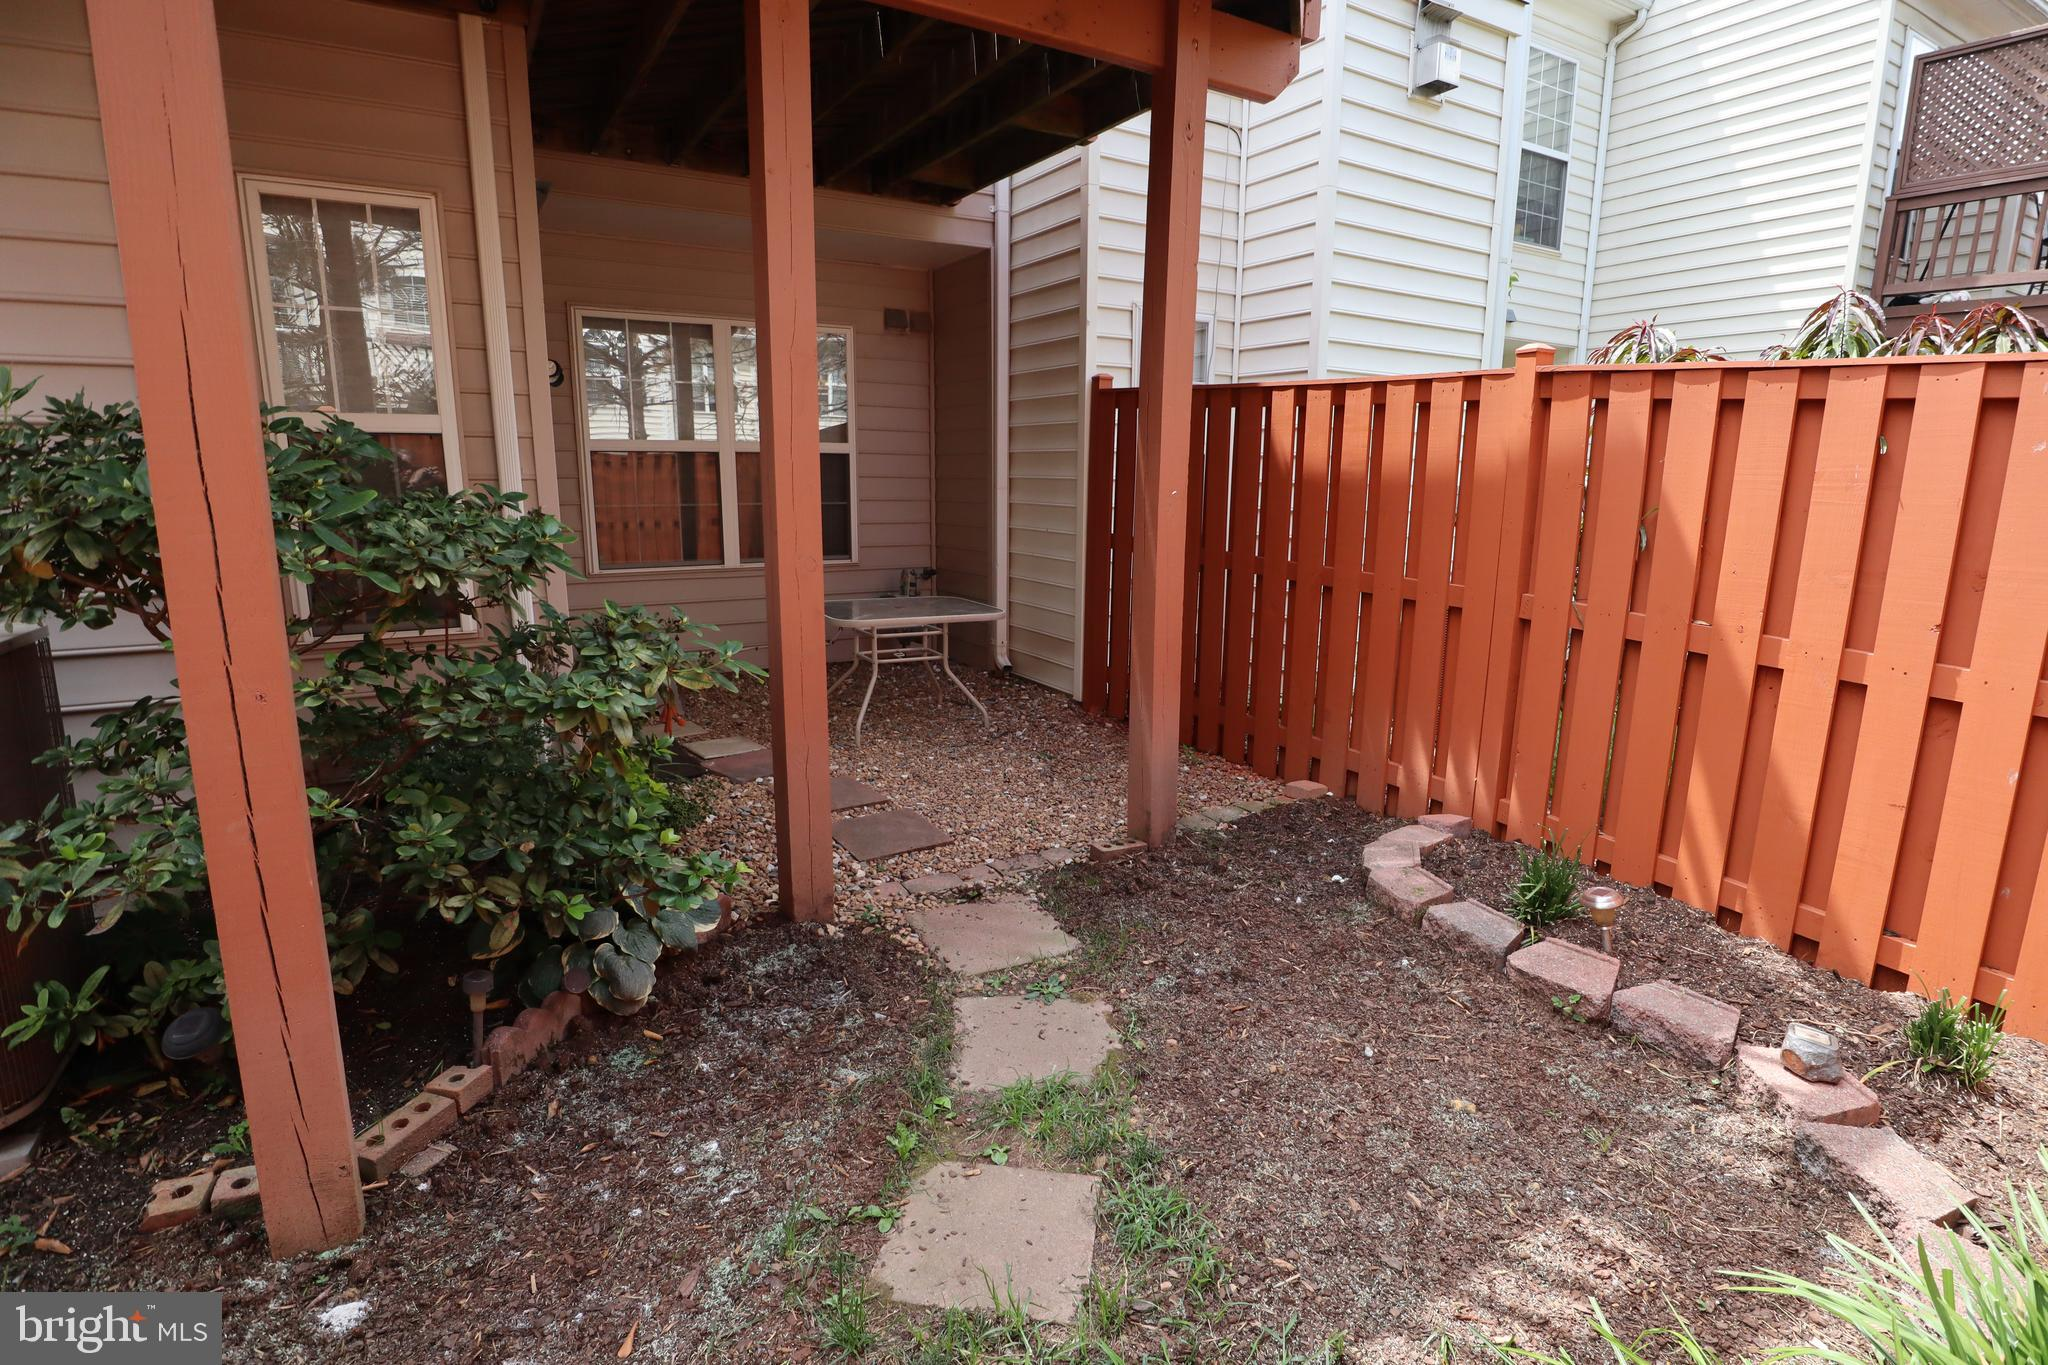 20147 1 Bedroom Home For Sale